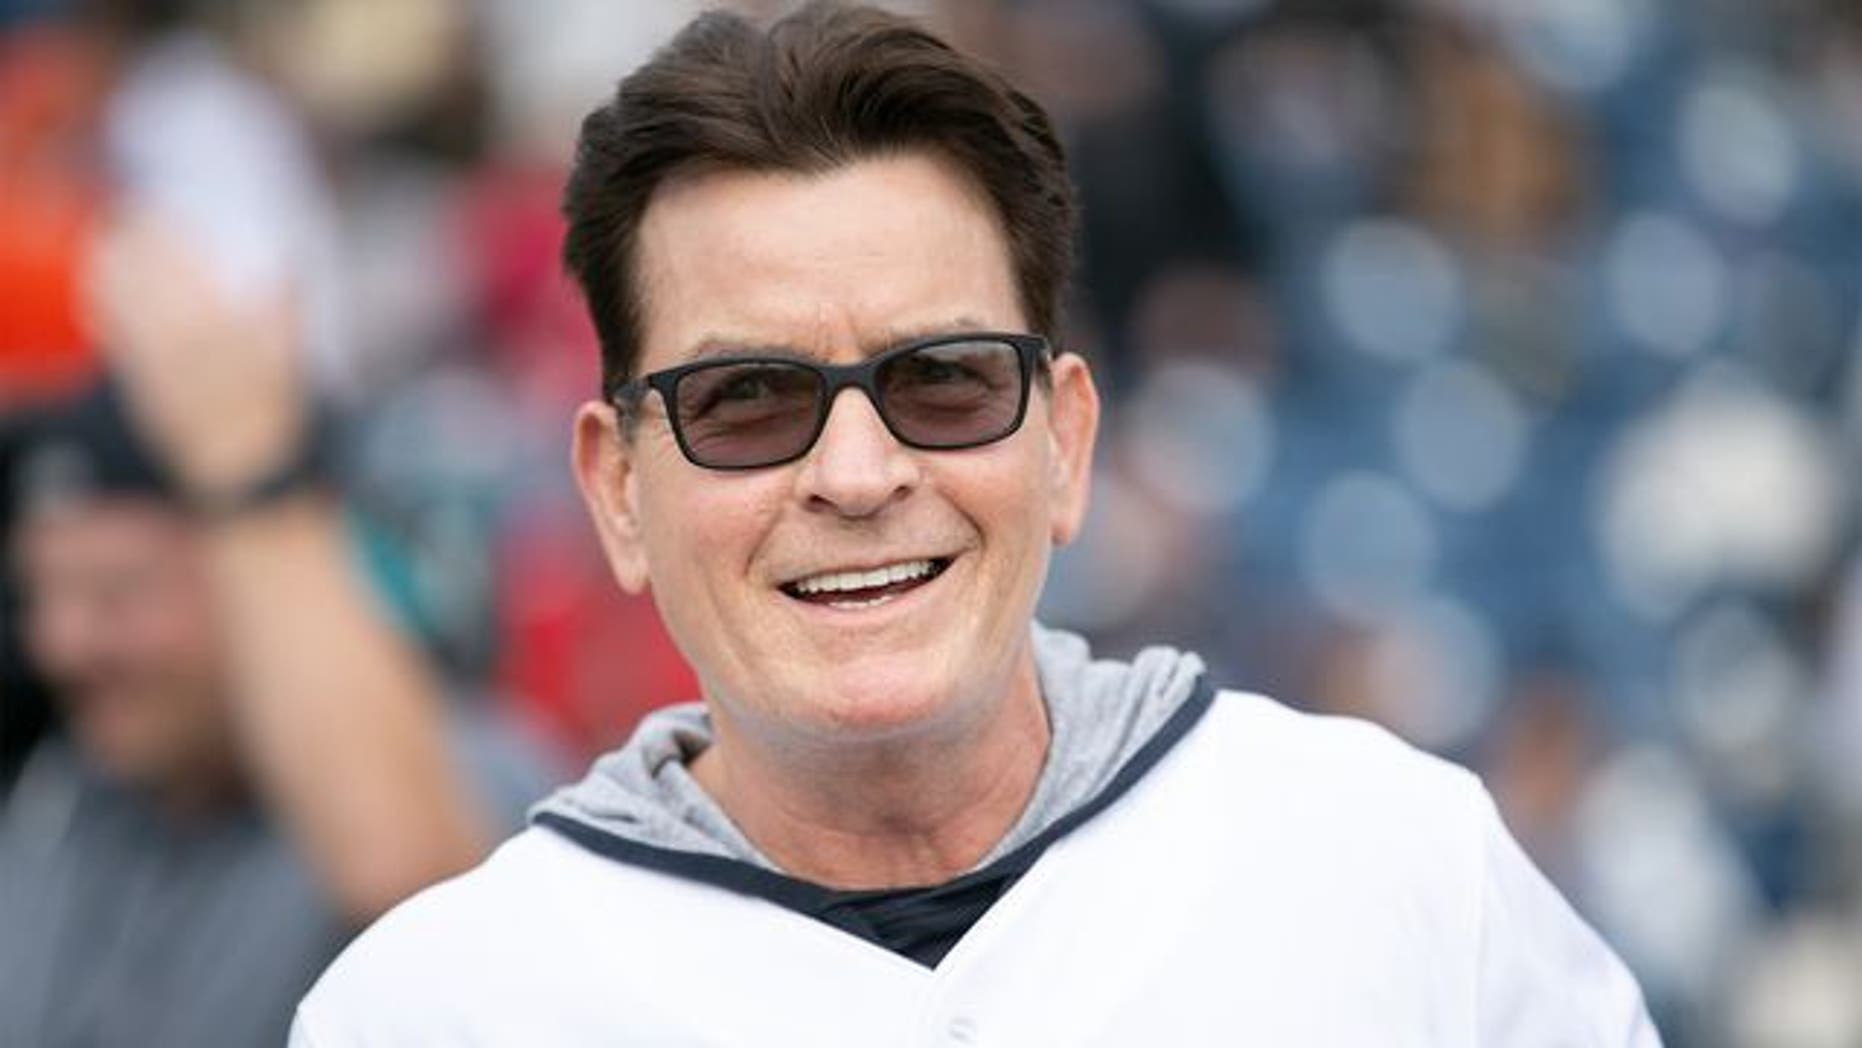 Charlie Sheen shaved over a million off the asking price for his Beverly Hills home.